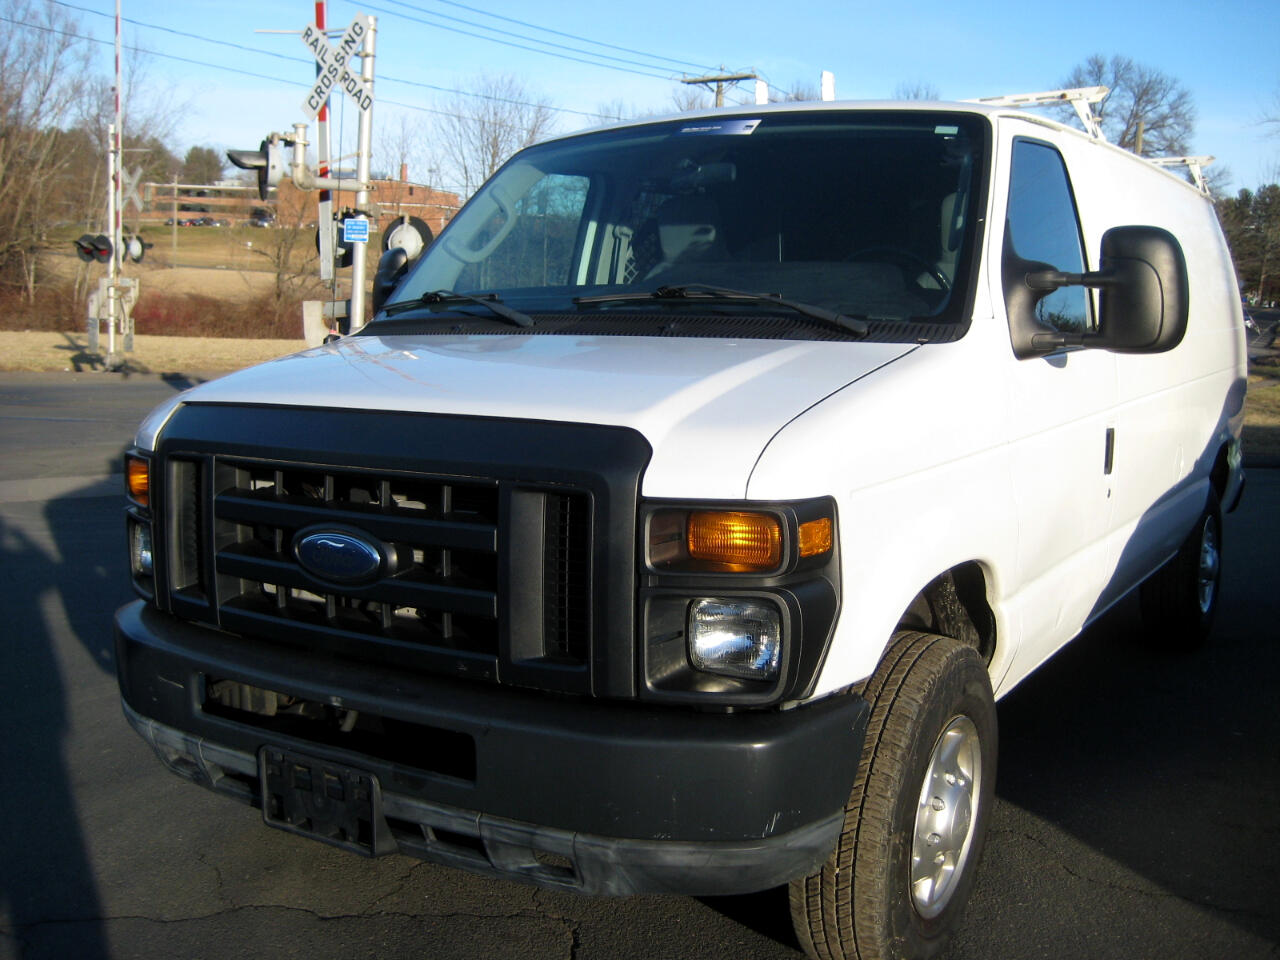 Ford Econoline Cargo Van E-350 Super Duty Commercial 2011